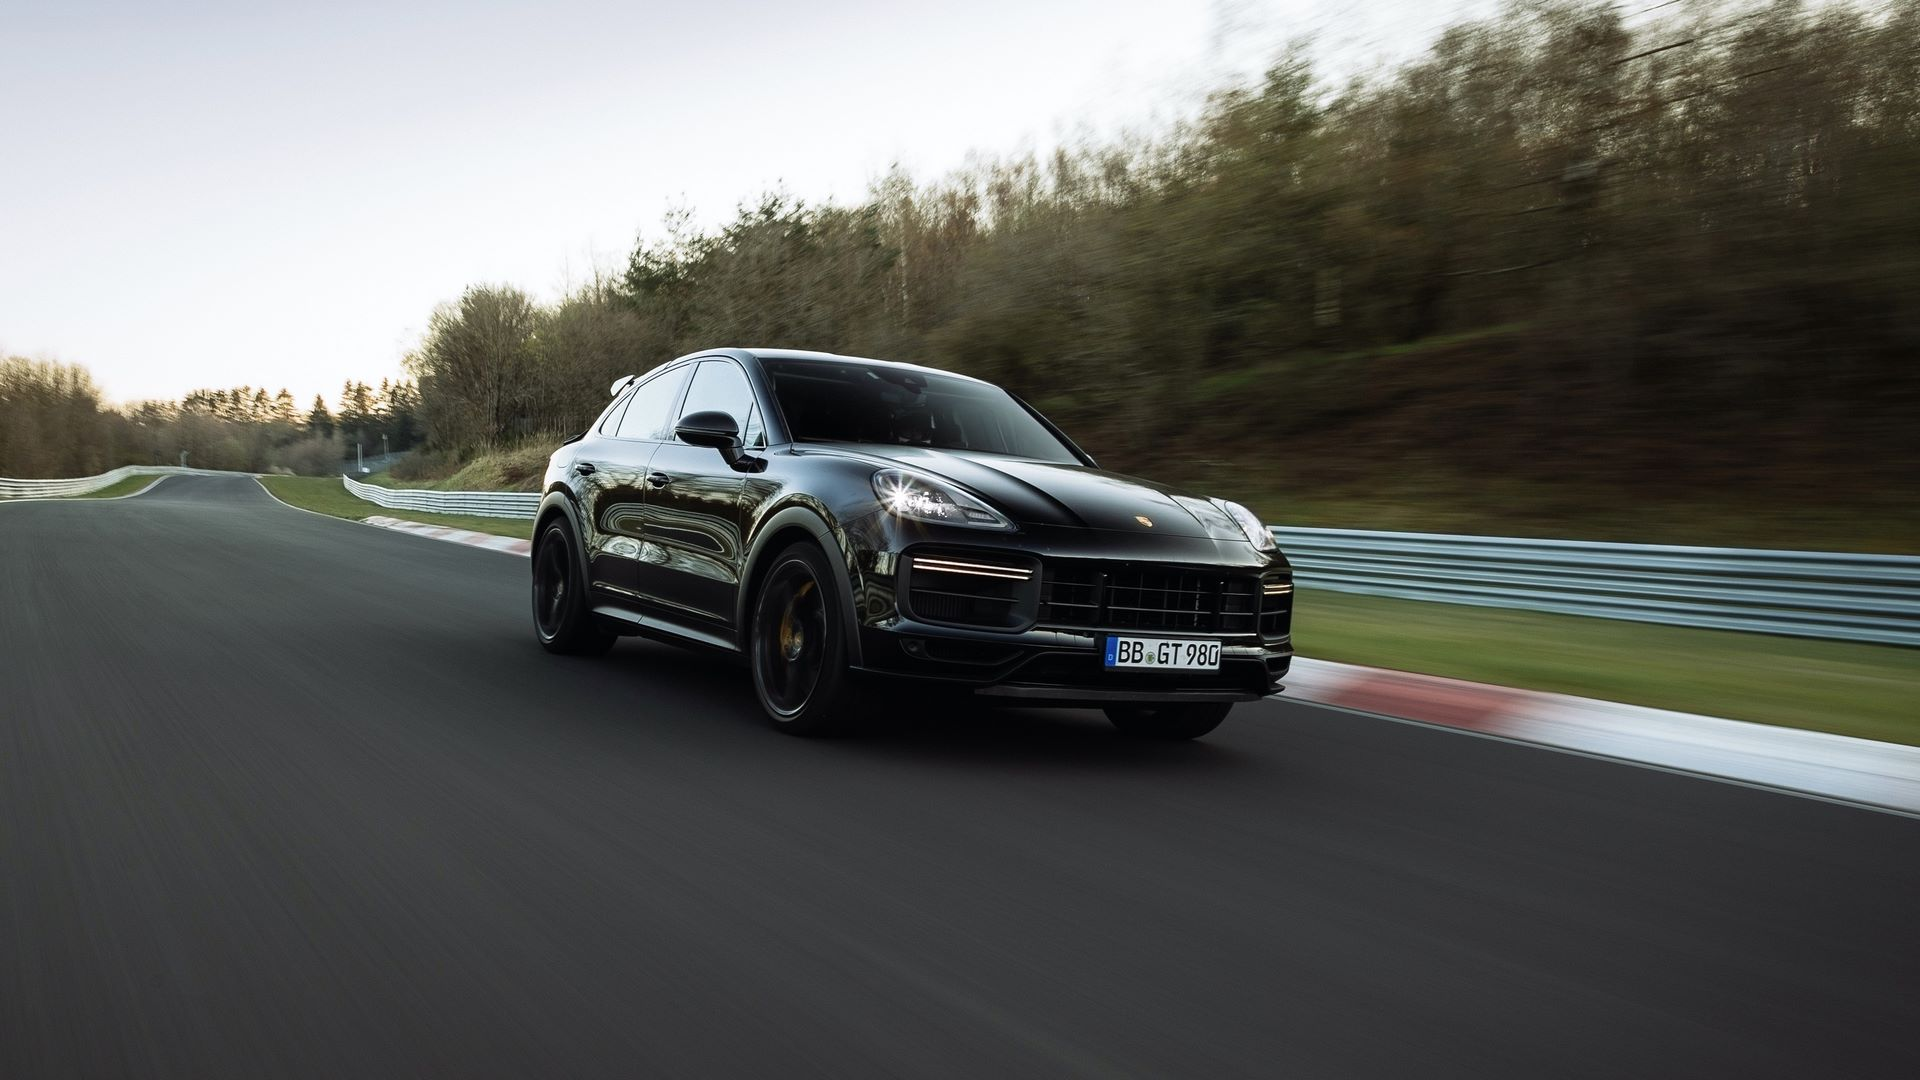 Porsche-Cayenne-Coupe-Nurburgring-SUV-lap-record-4